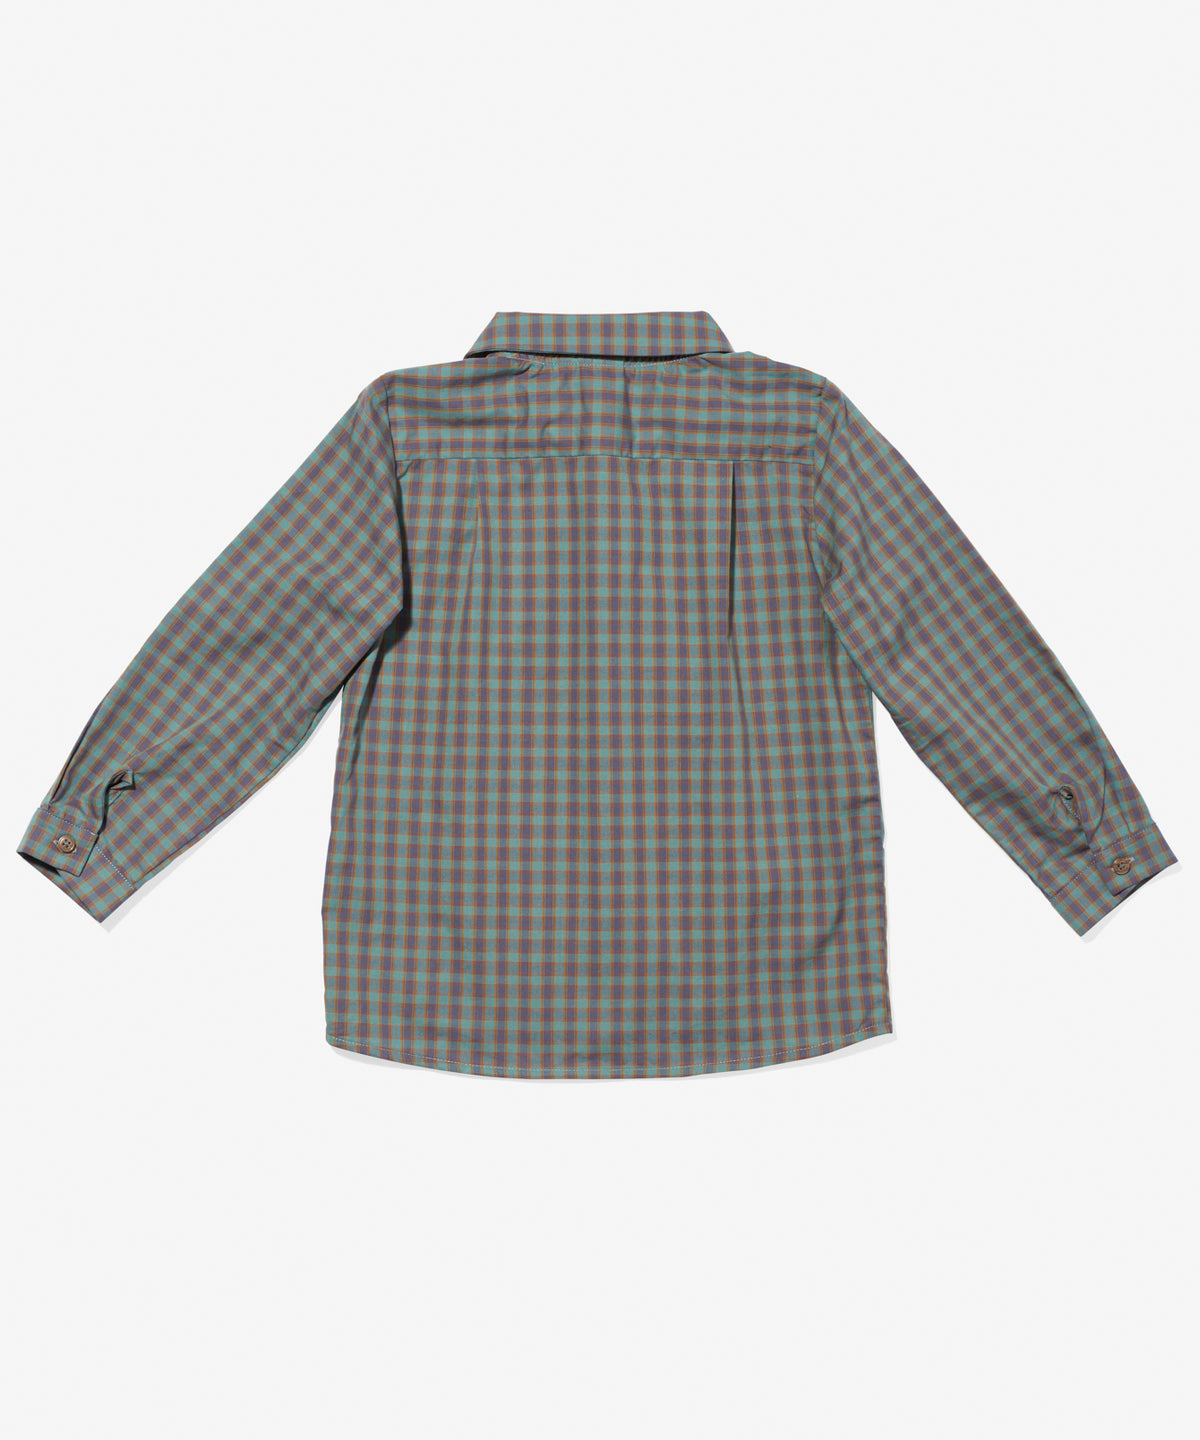 Jefferson Shirt, Seafoam Plaid